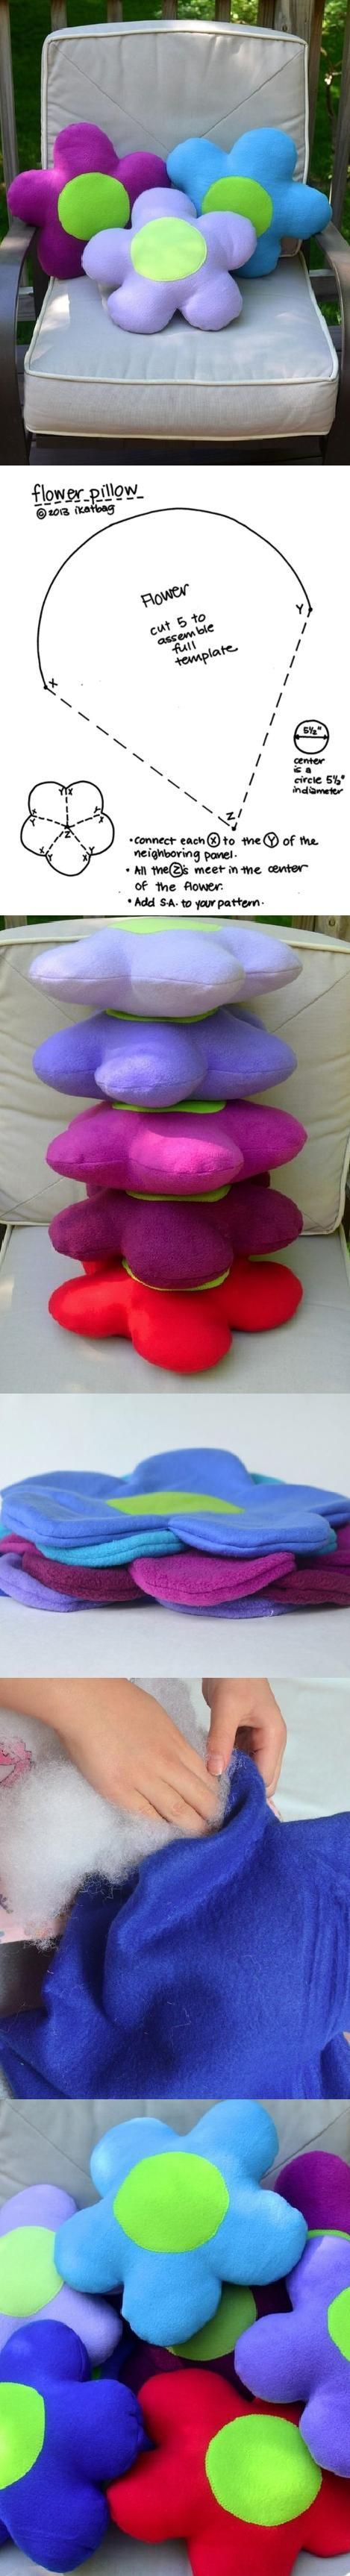 DIY Flower Pillow #Colour #Decoration idea +++ Manualidad coser cojines en forma…